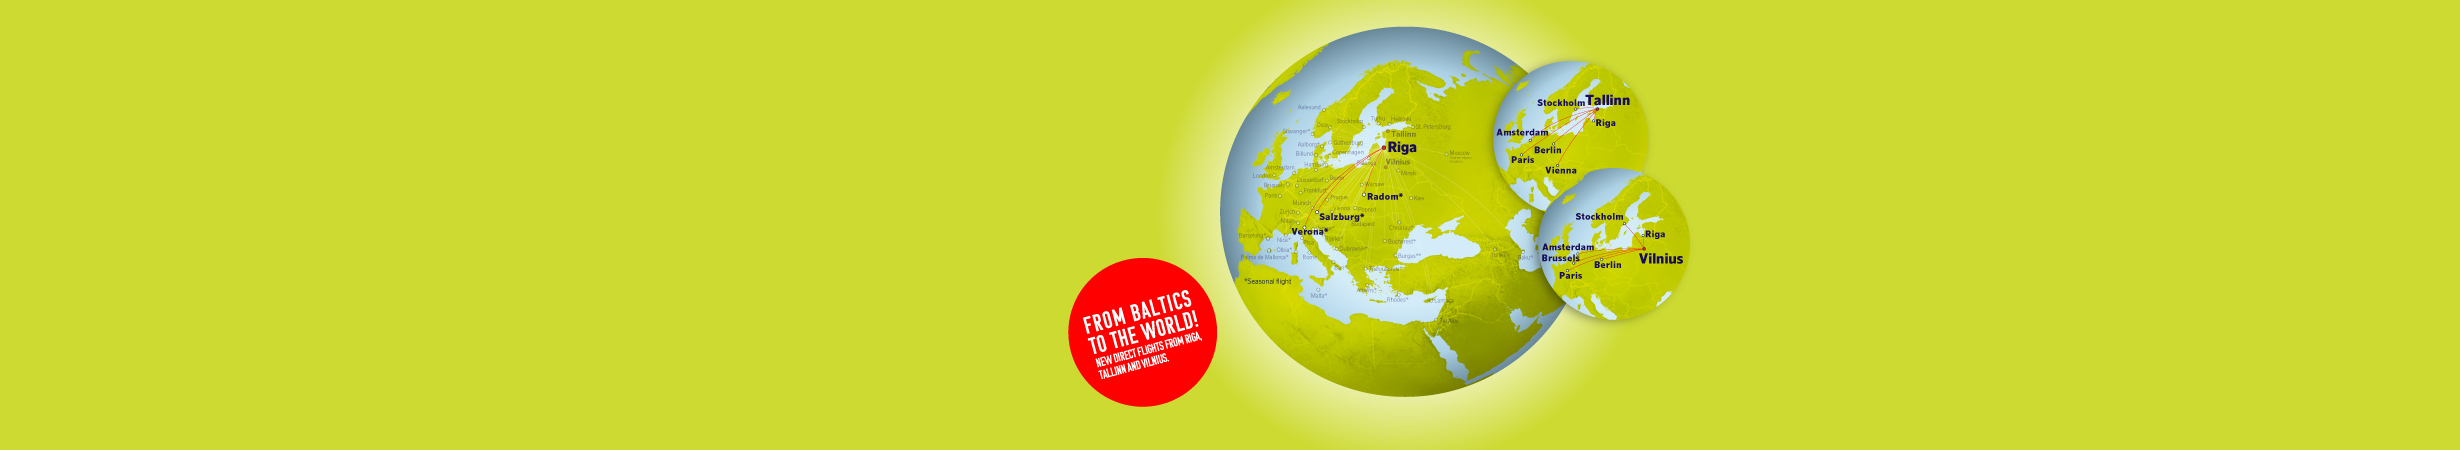 From Baltics to the world!